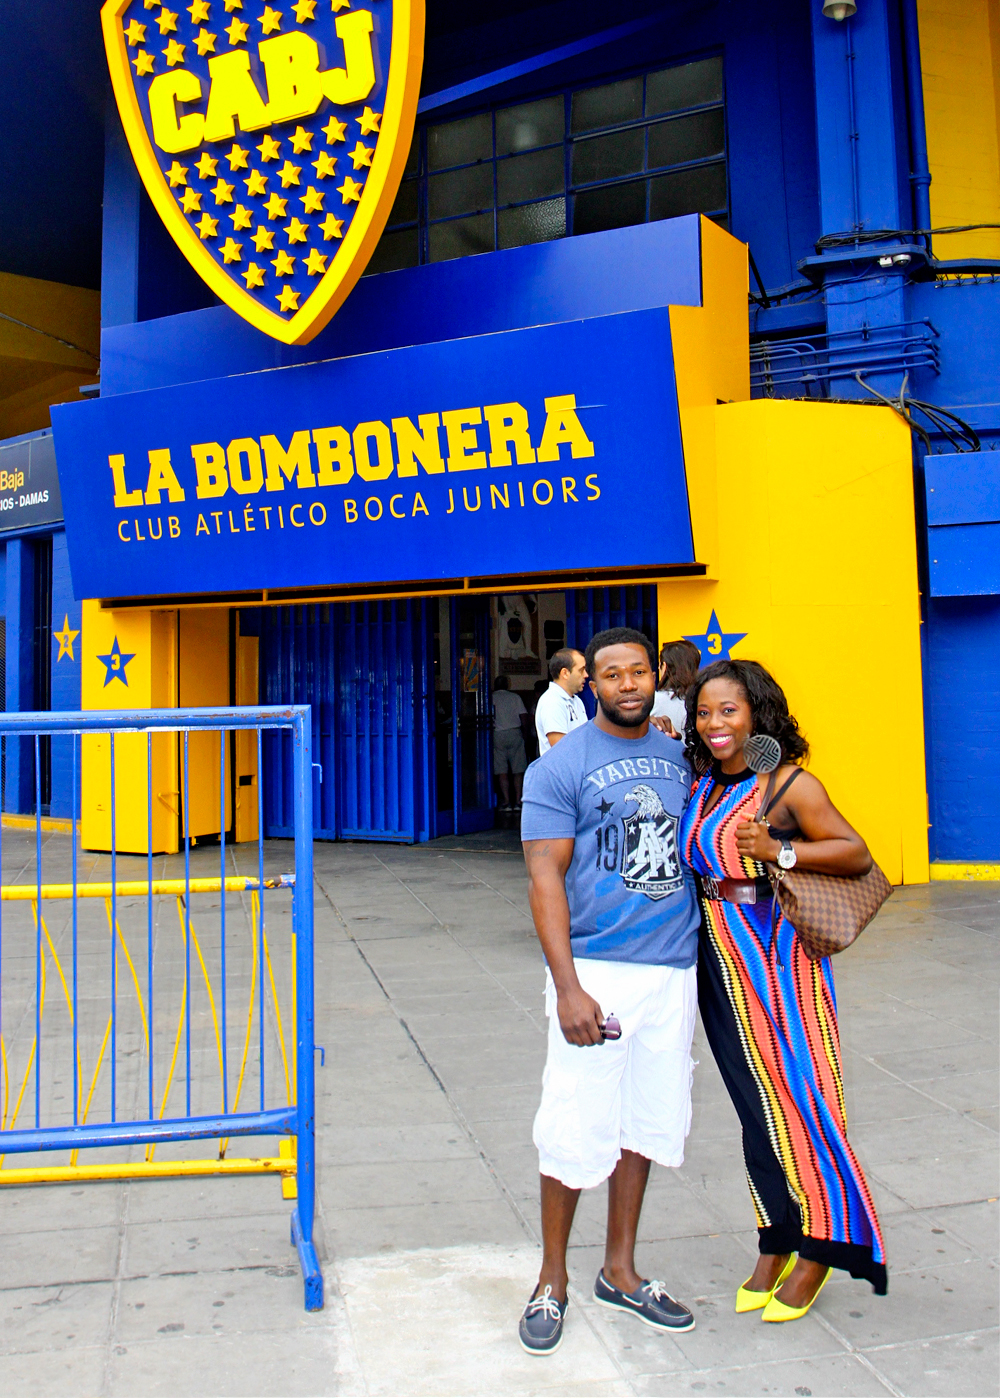 My brother and I in front of the Boca Juniors stadium